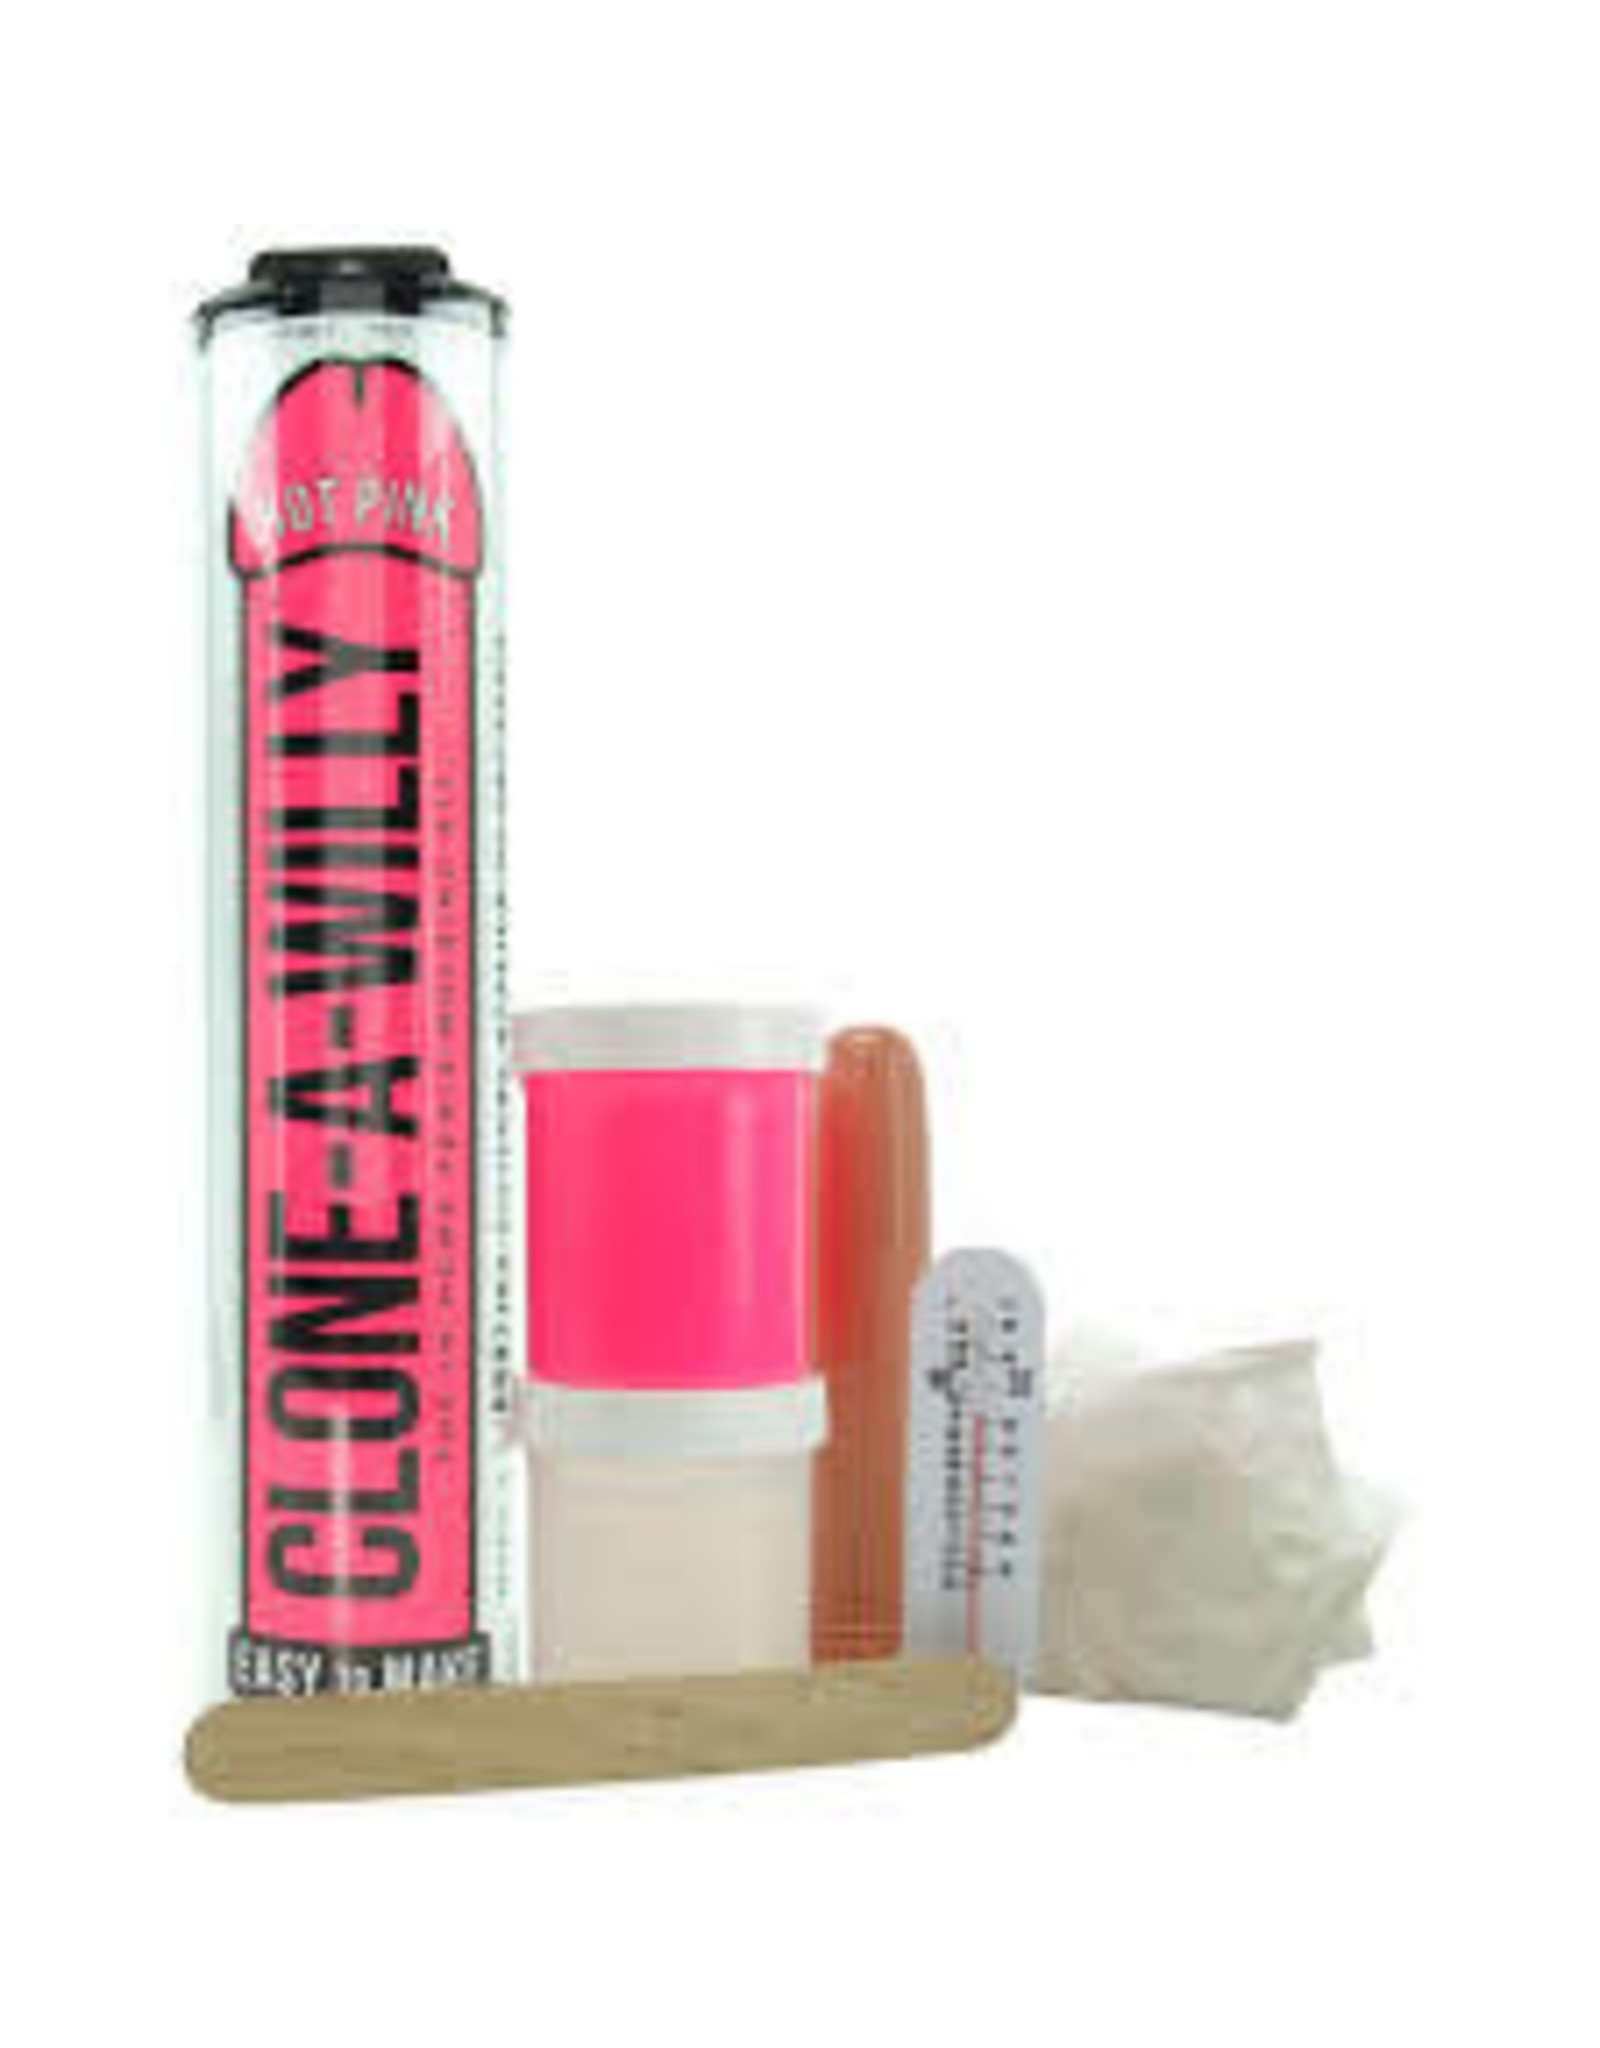 Clone A Willy Hot Pink